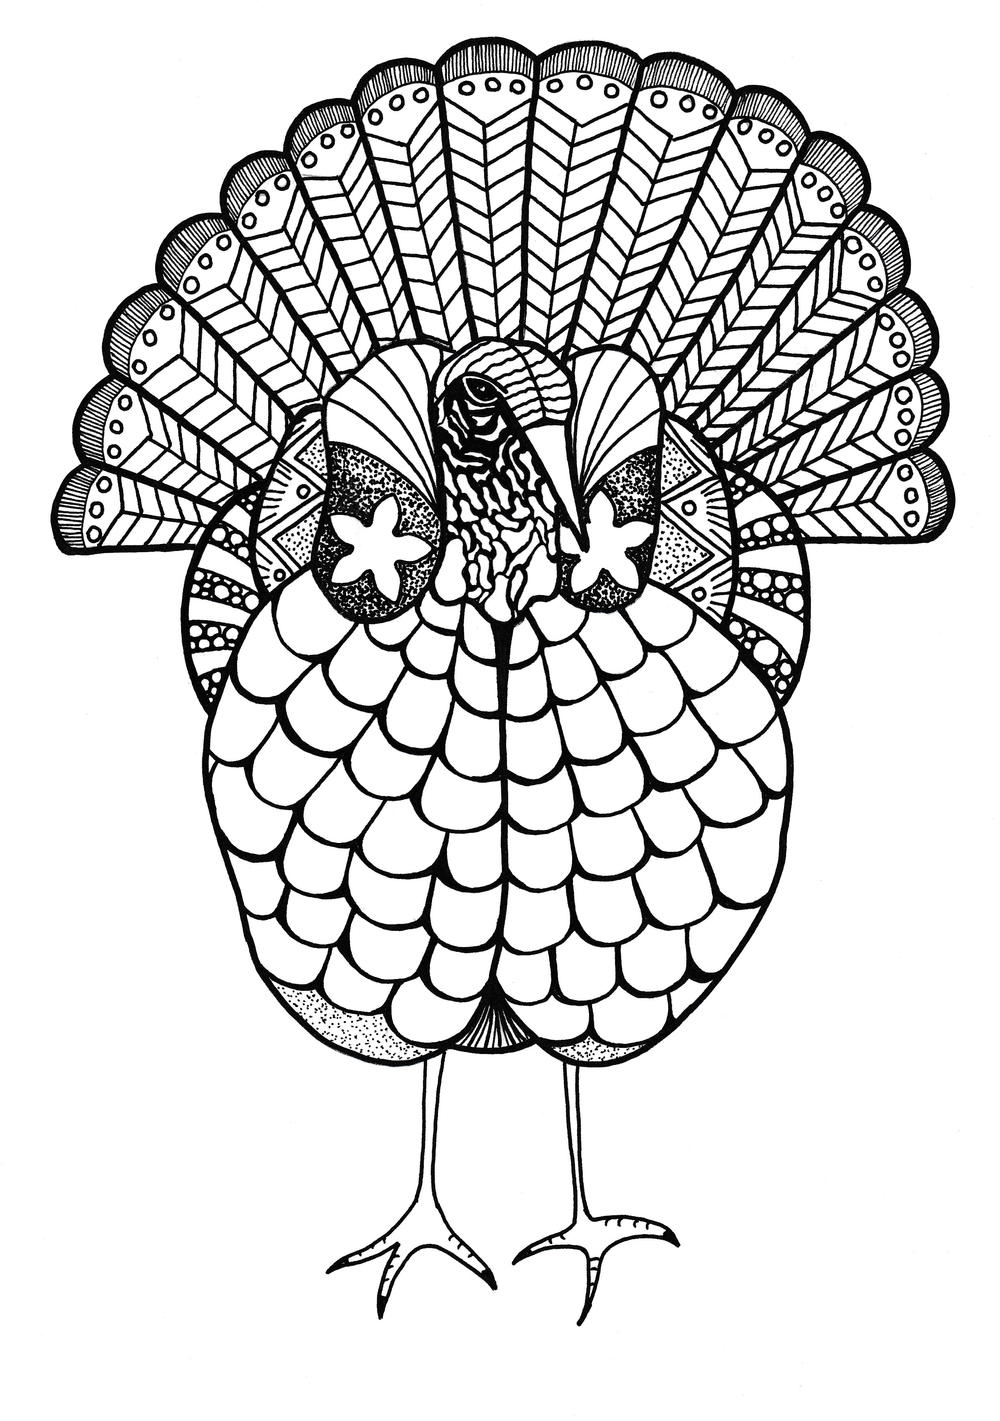 turky coloring pages 4 kids - photo#17